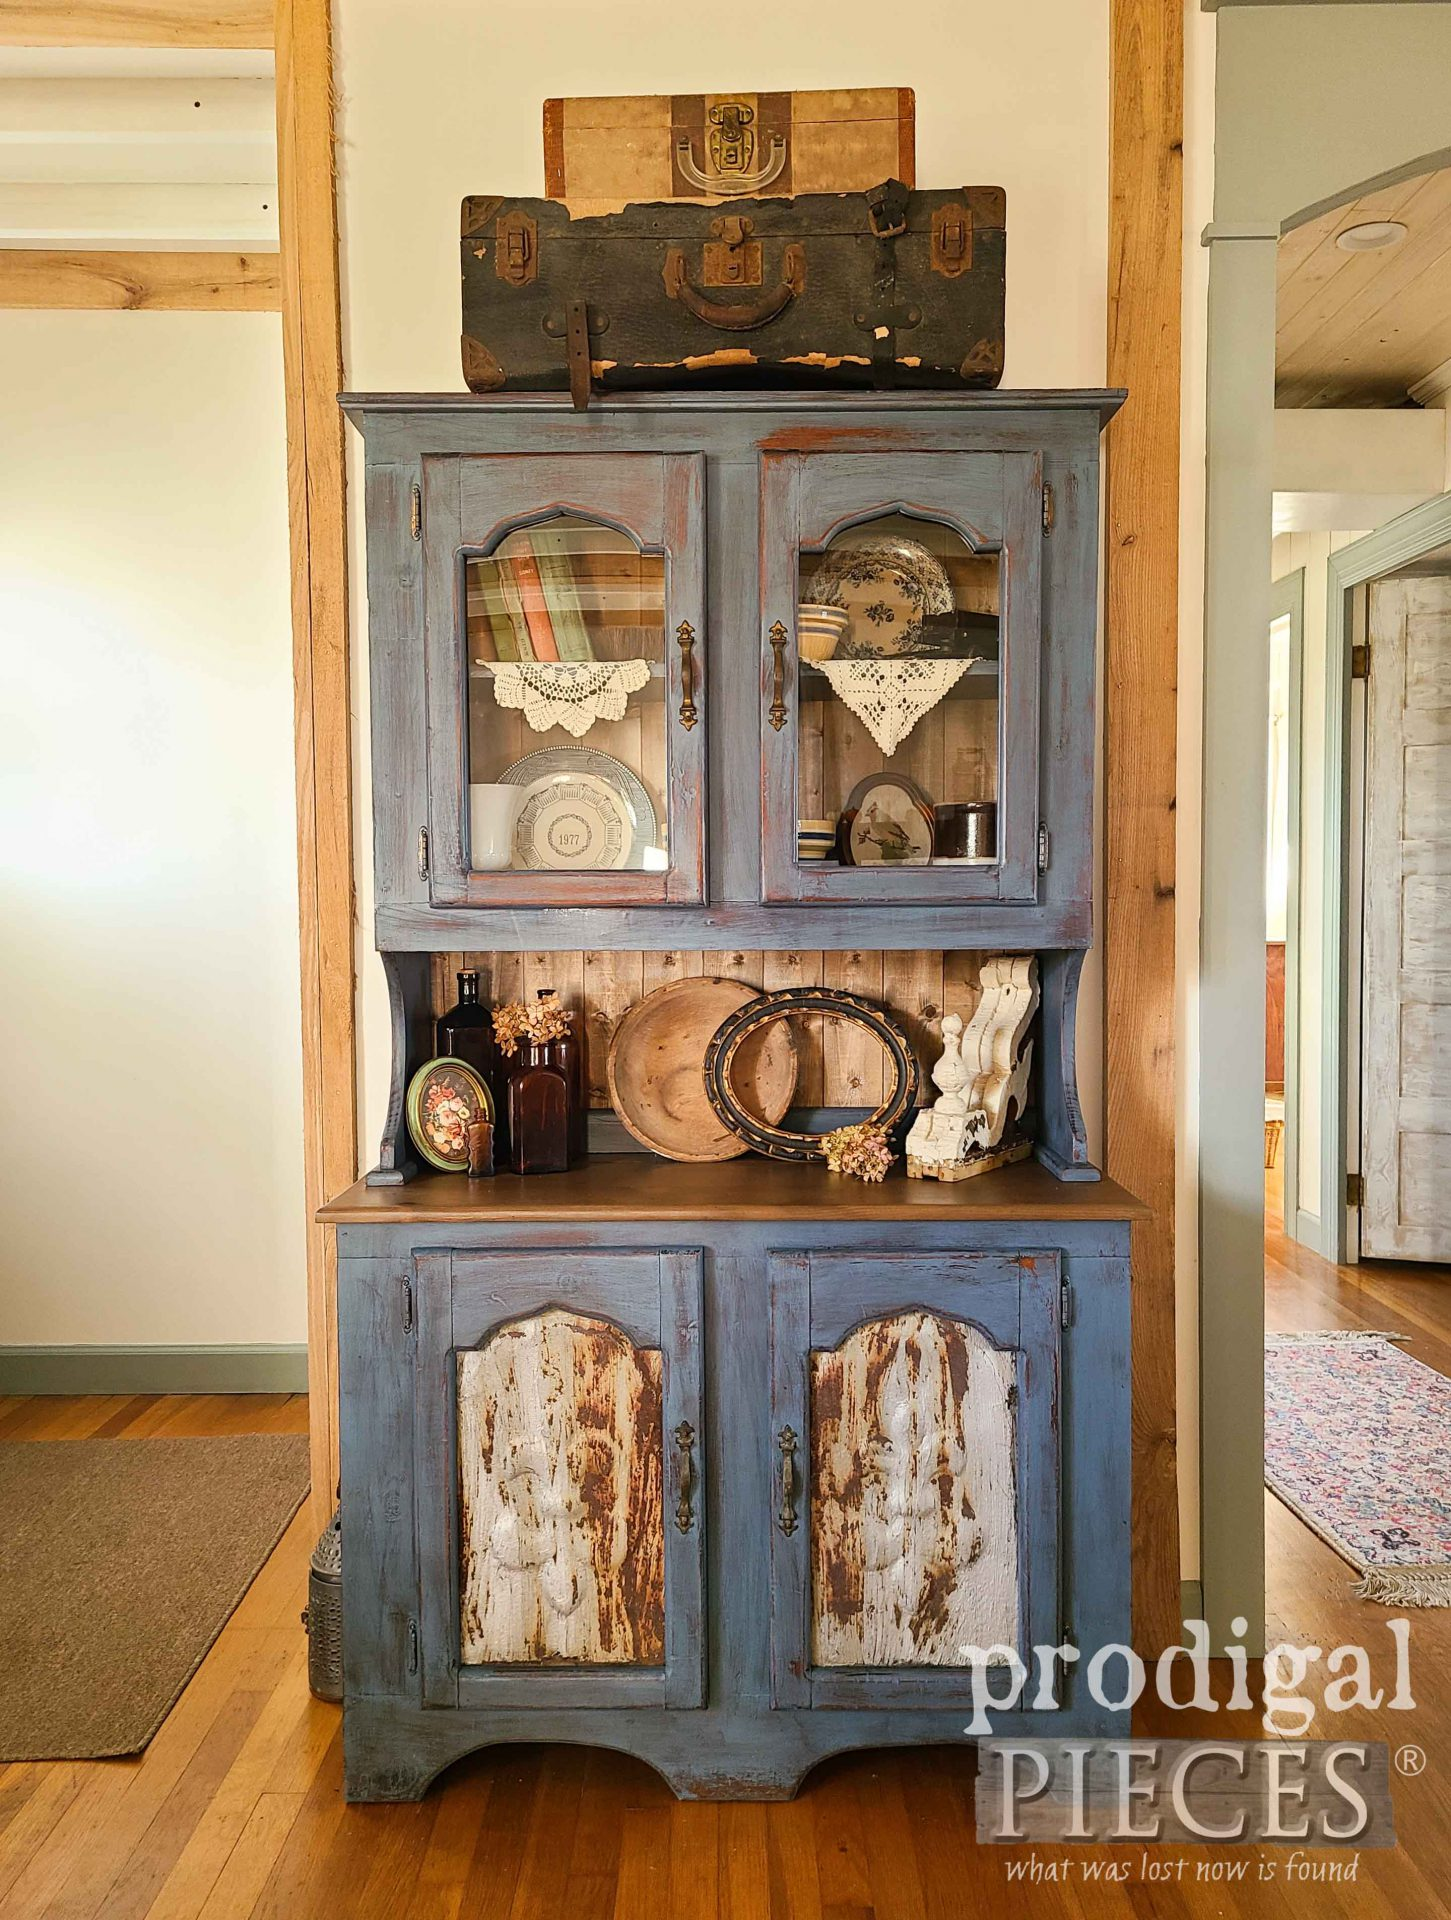 Vintage Farmhouse Hutch in Salvage Style Makeover by Larissa of Prodigal Pieces | prodigalpieces.com #prodigalpieces #furniture #farmhouse #diy #home #homedecor